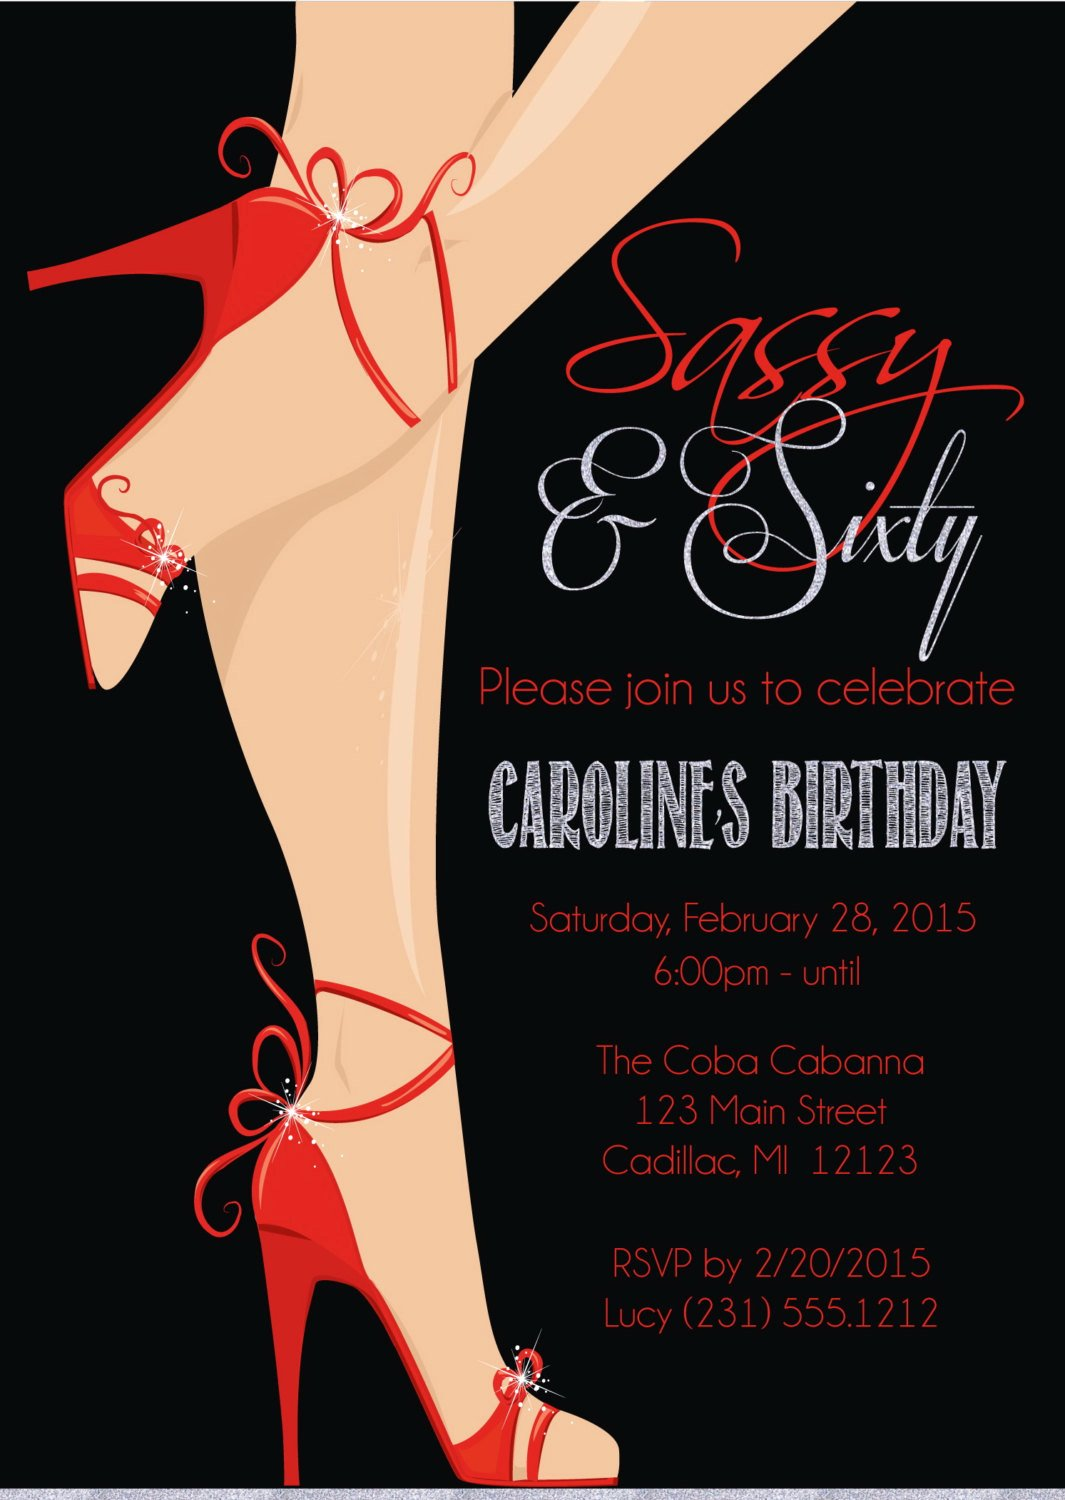 60 Th Birthday Invitation Best Of Red Shoe 60th Birthday Invitation Women S Sassy & Sixty